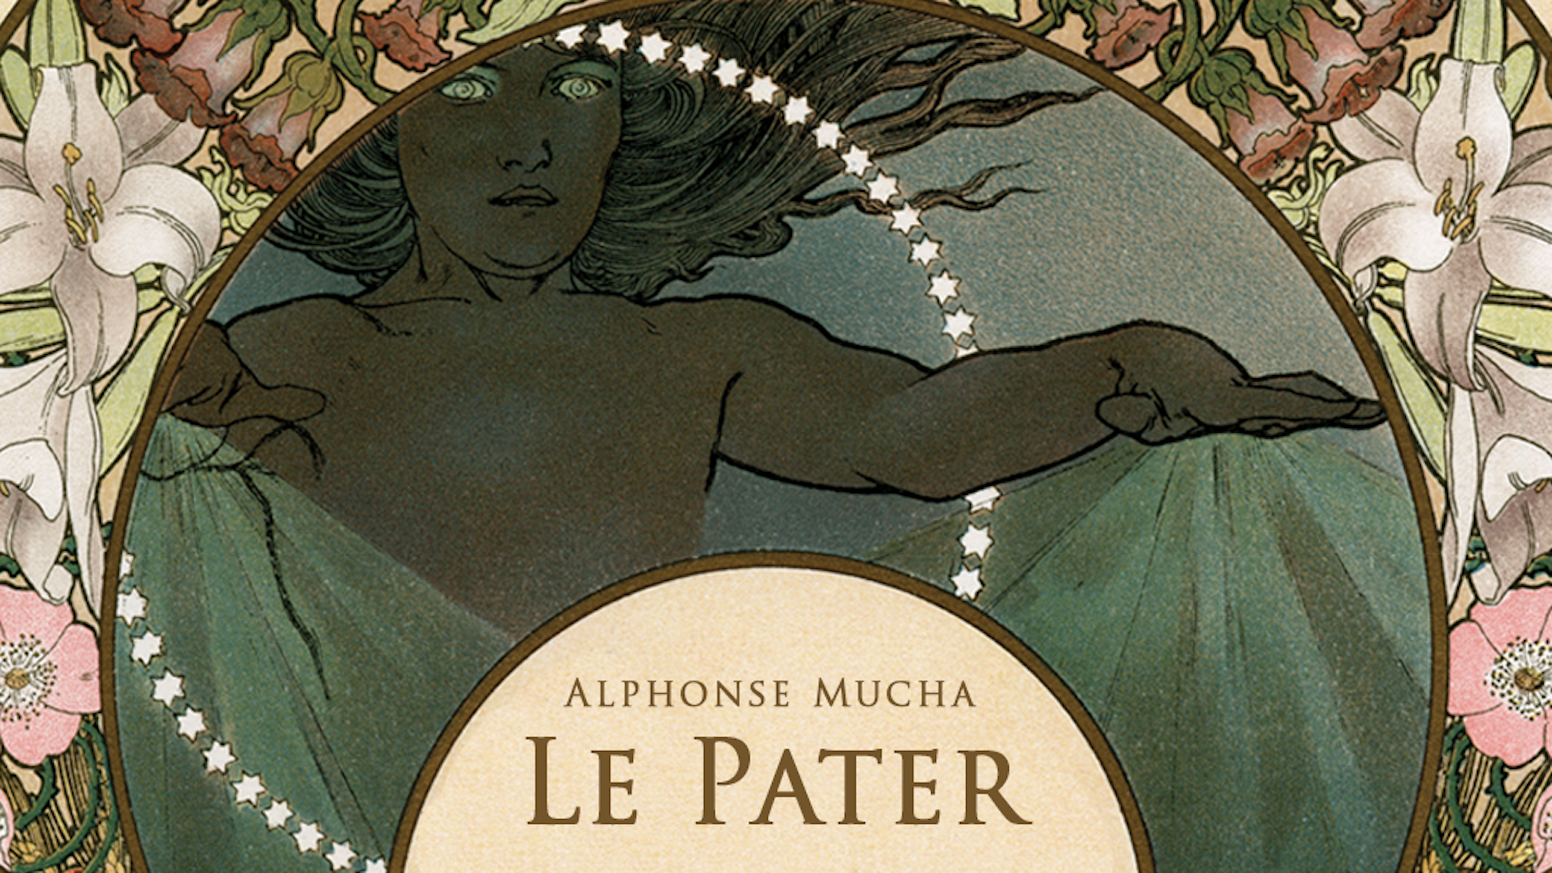 In 1899 Art Nouveau illustrator Alphonse Mucha printed 510 copies of his masterpiece. In 2016 we are finally unlocking its secrets.